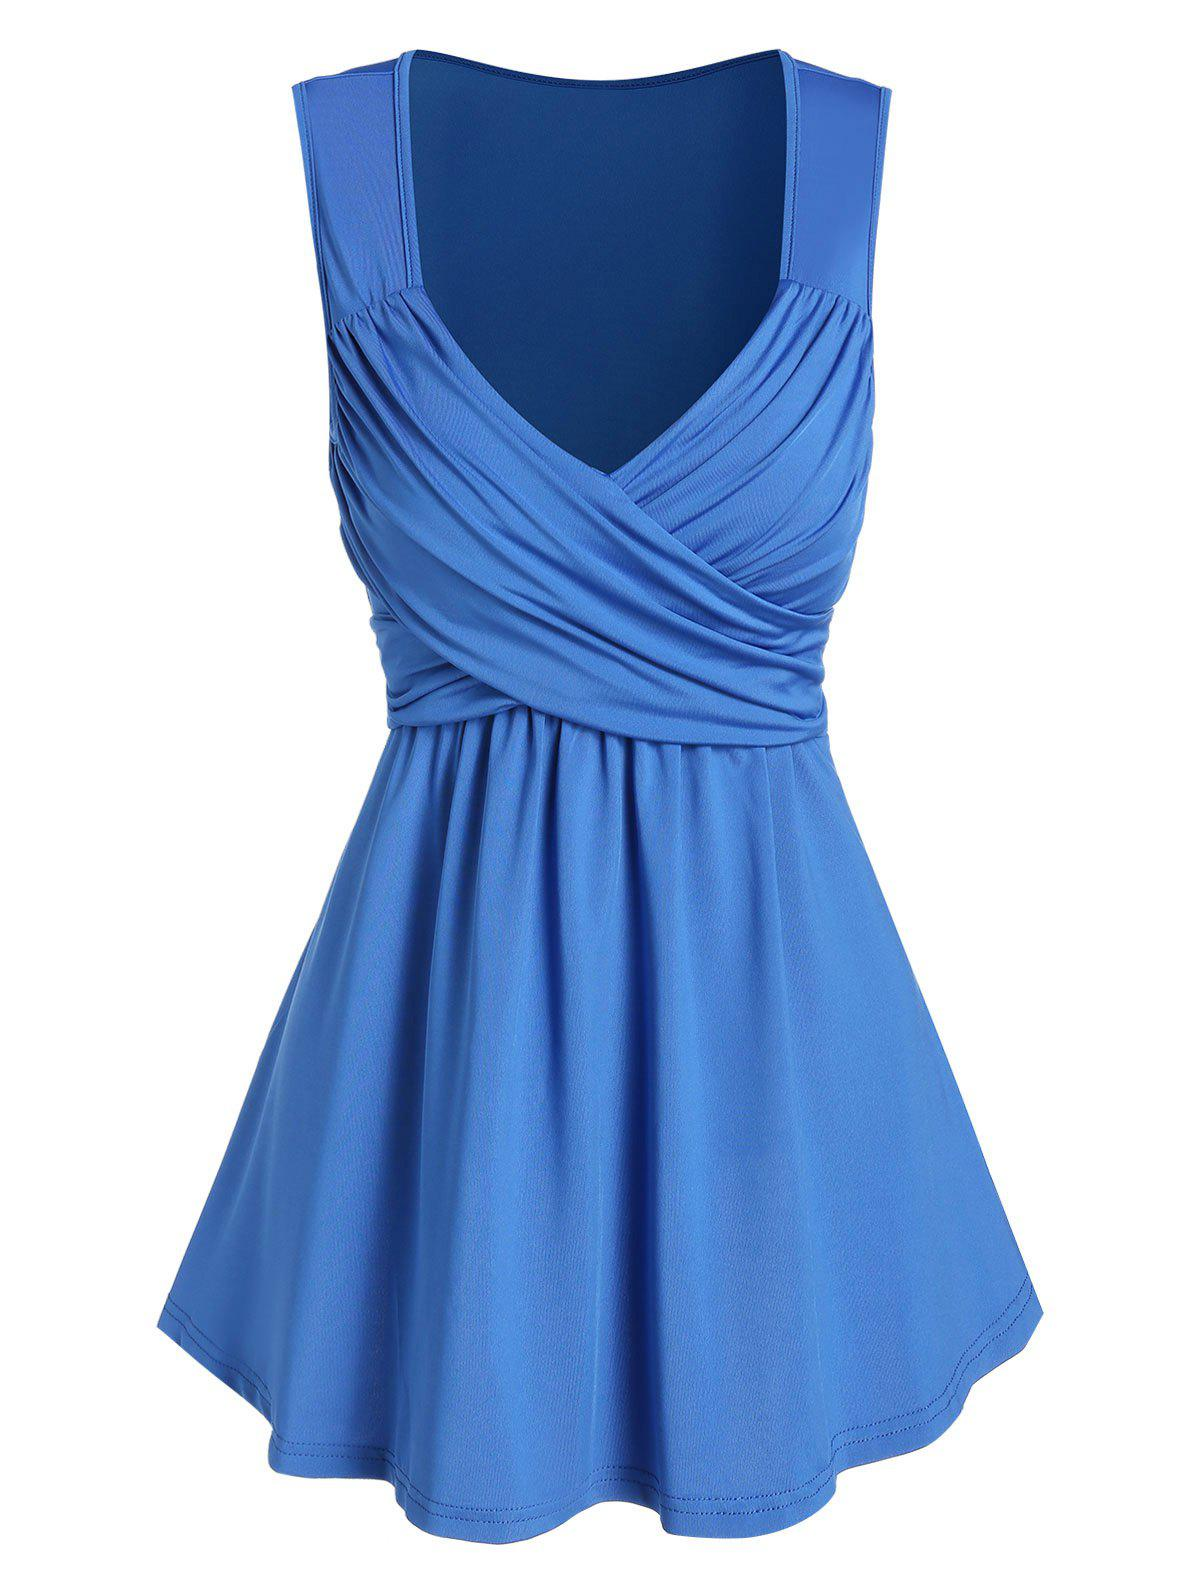 Best Plunge Neck Crossover Flare Tank Top